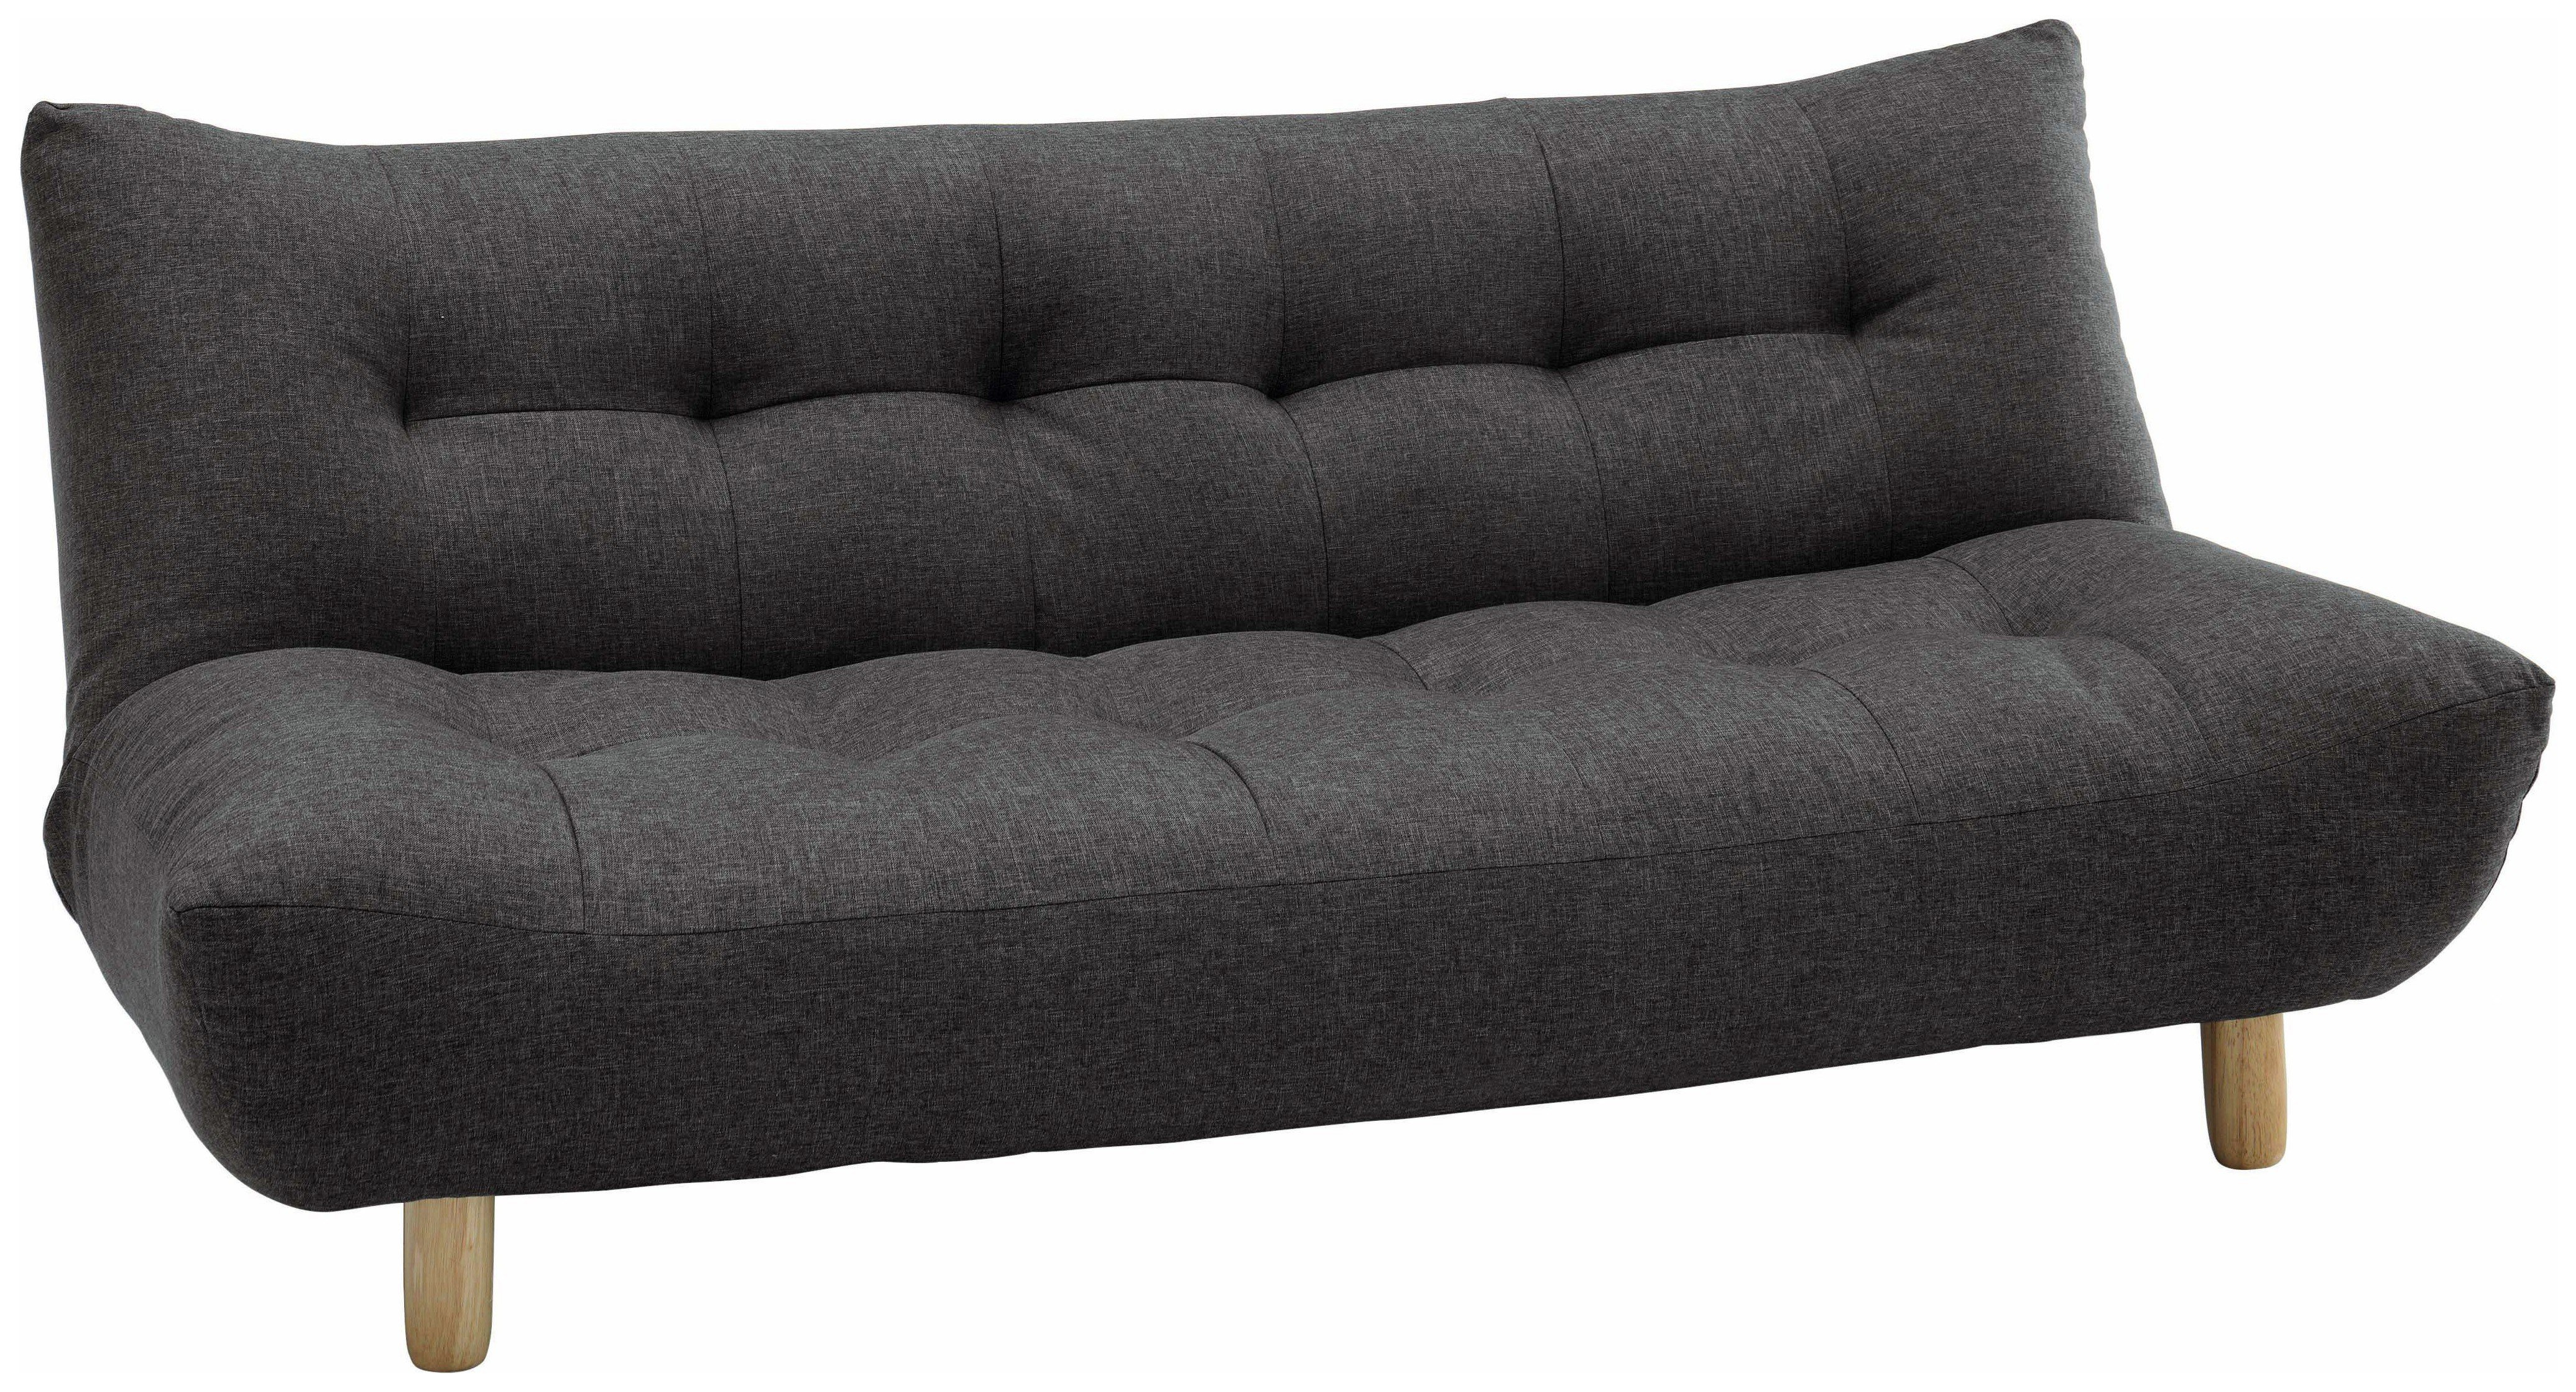 Astounding Habitat Kota 3 Seater Fabric Sofa Bed Charcoal 5017737 Caraccident5 Cool Chair Designs And Ideas Caraccident5Info